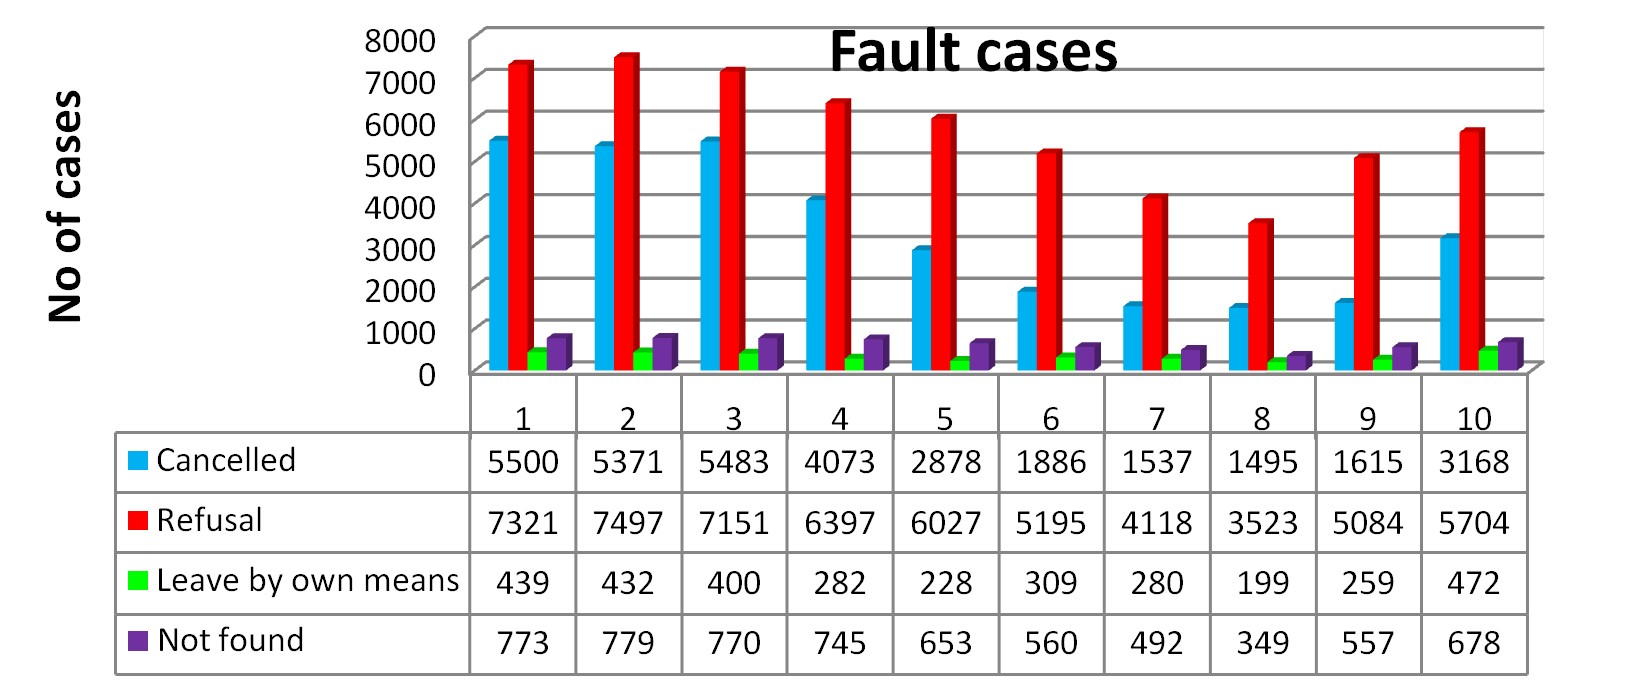 Figure 4. Relative annual distribution of fault cases over the decade (1=year 2006, 10= year 2015): blue-Cancelled, red-Refusal, green-Leave by own means, purple-Not found. Bar charts graph (up), Violinplots (down).